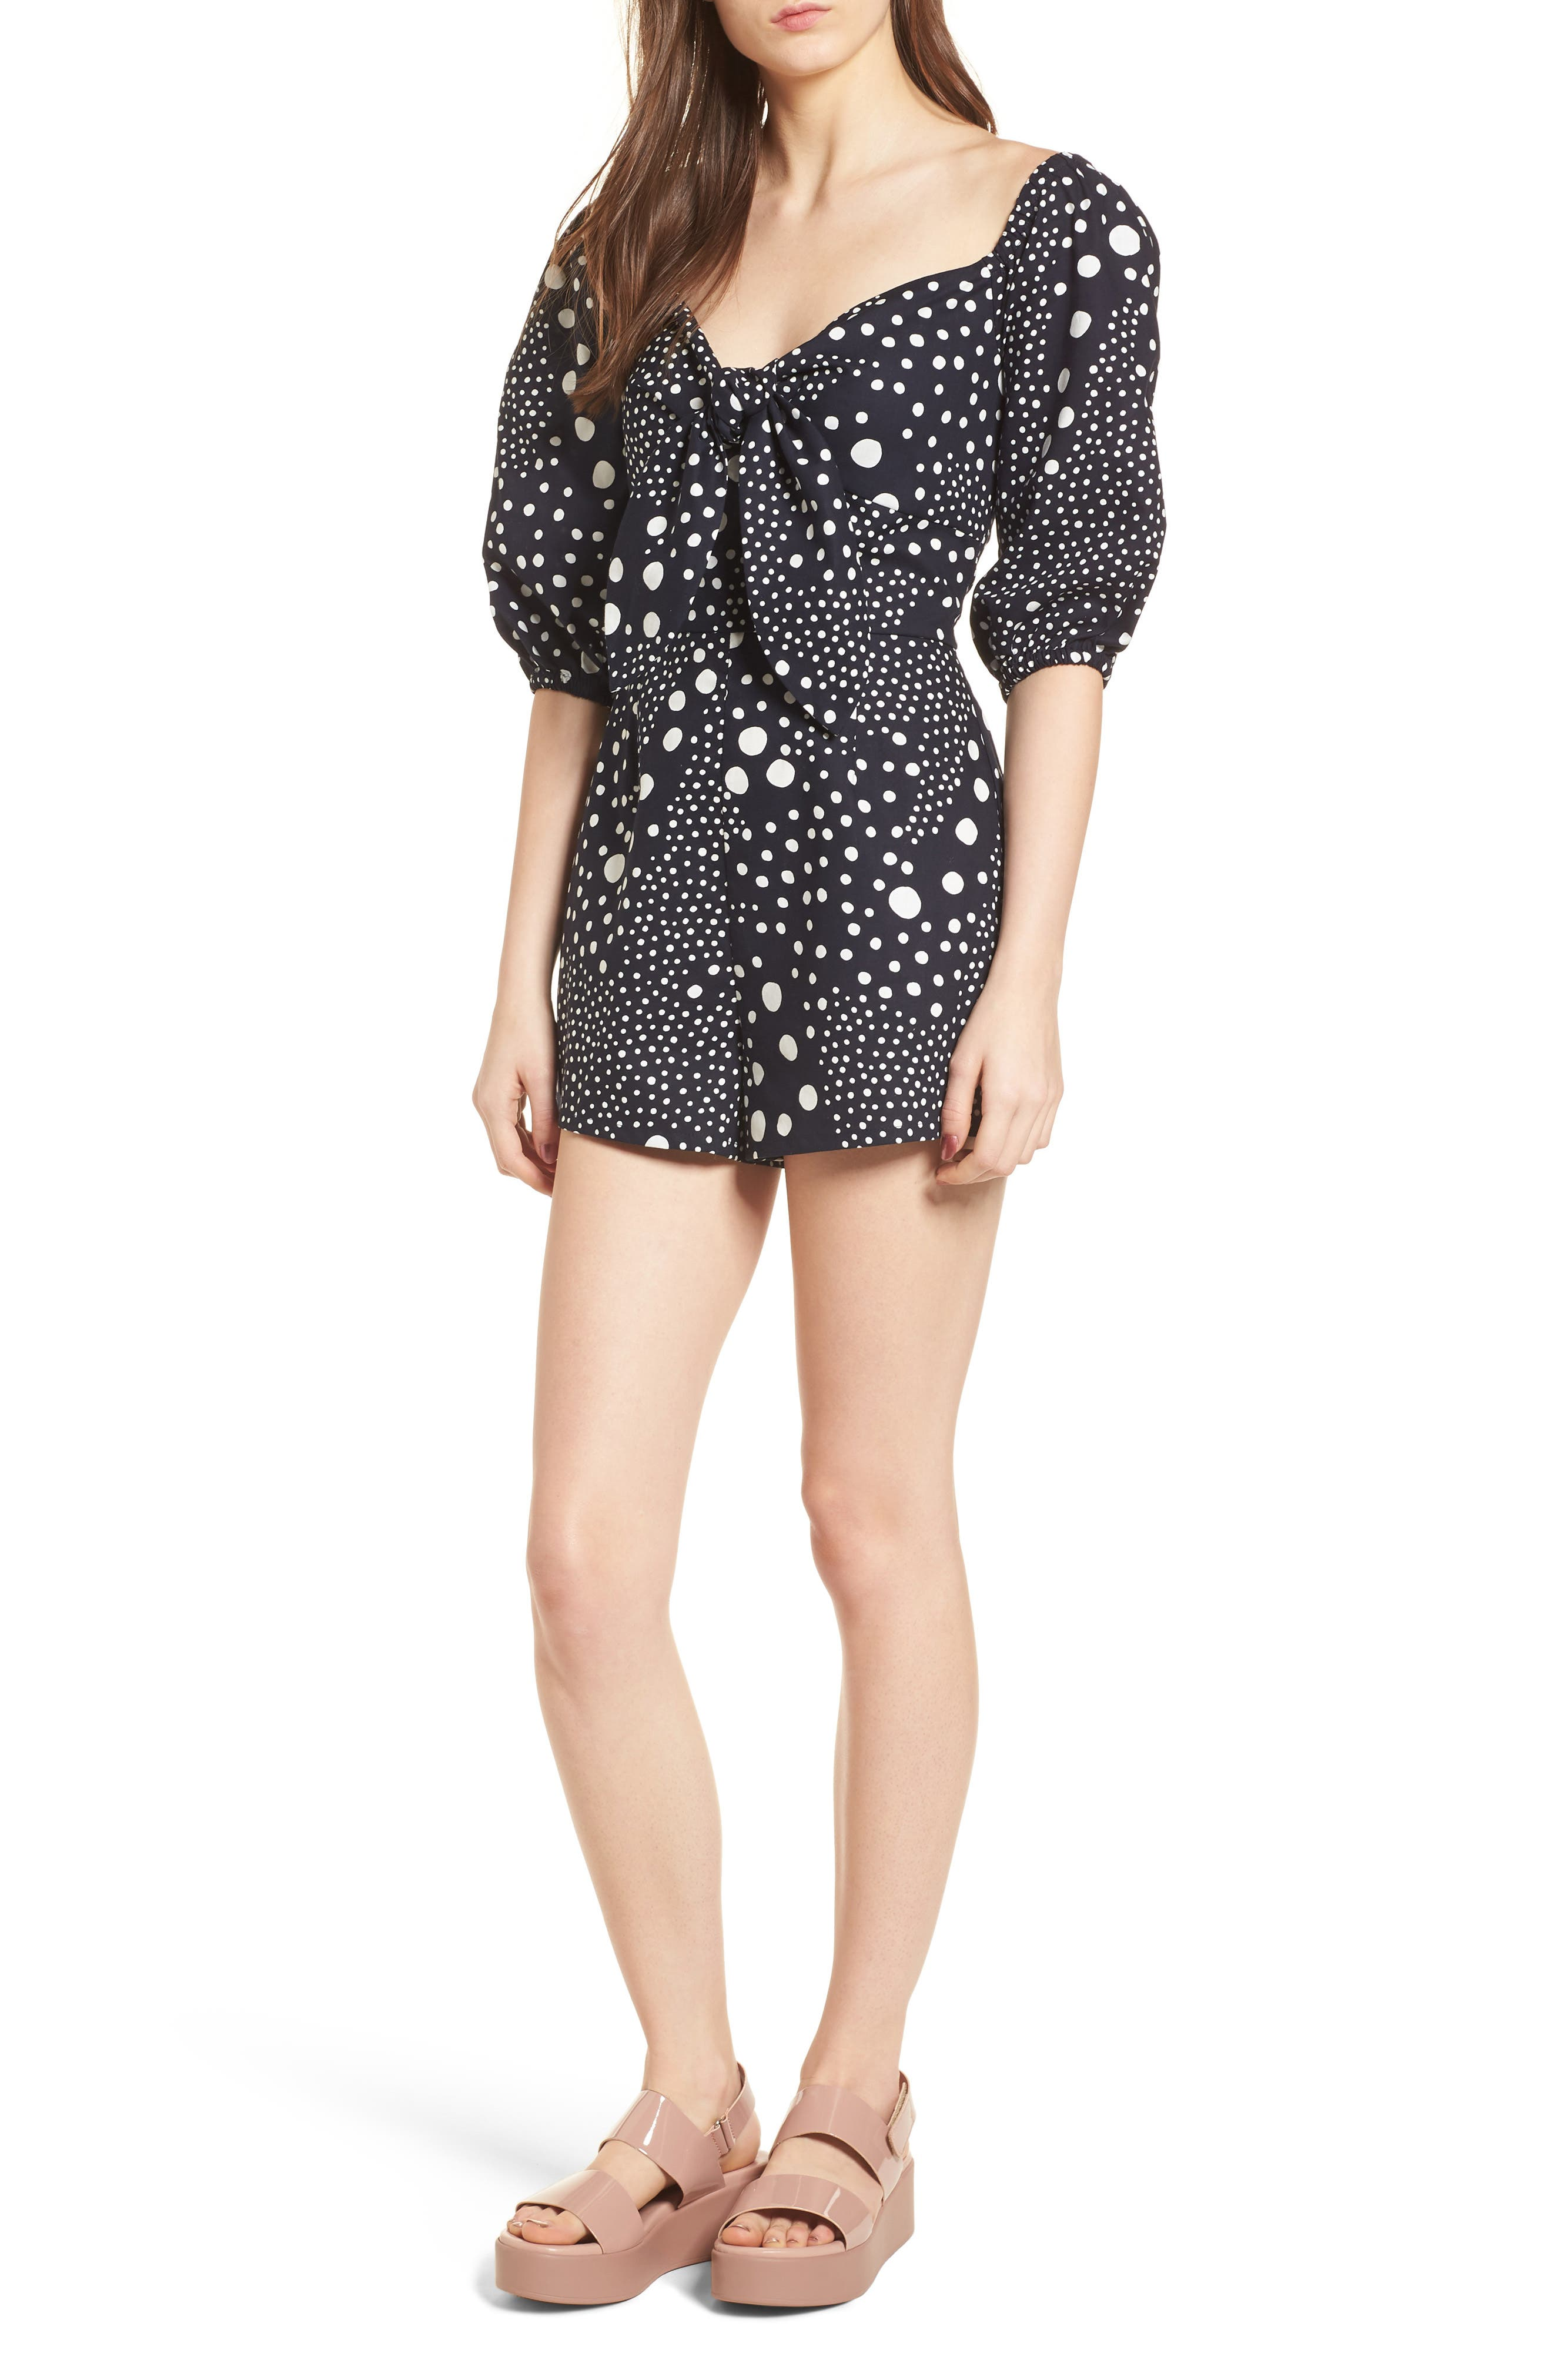 Lagoon Puff Sleeve Romper,                         Main,                         color, Navy Pebble